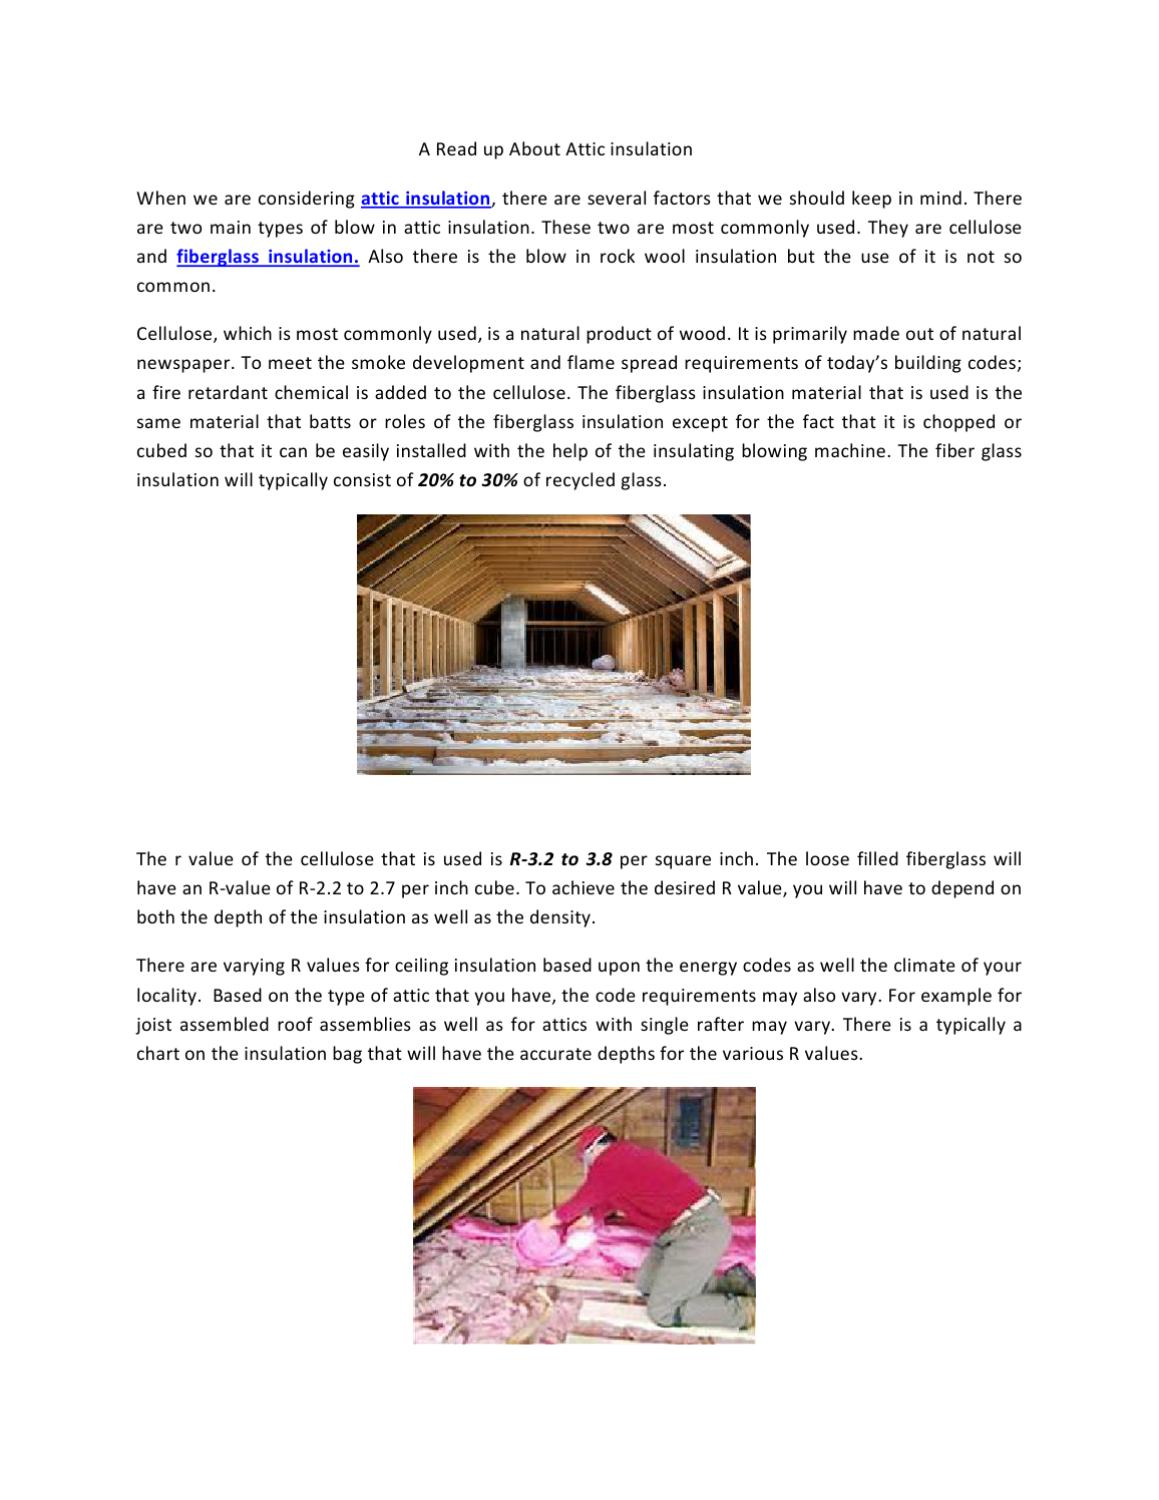 A Read Up About Attic Insulation by Daryl Quinnett - issuu